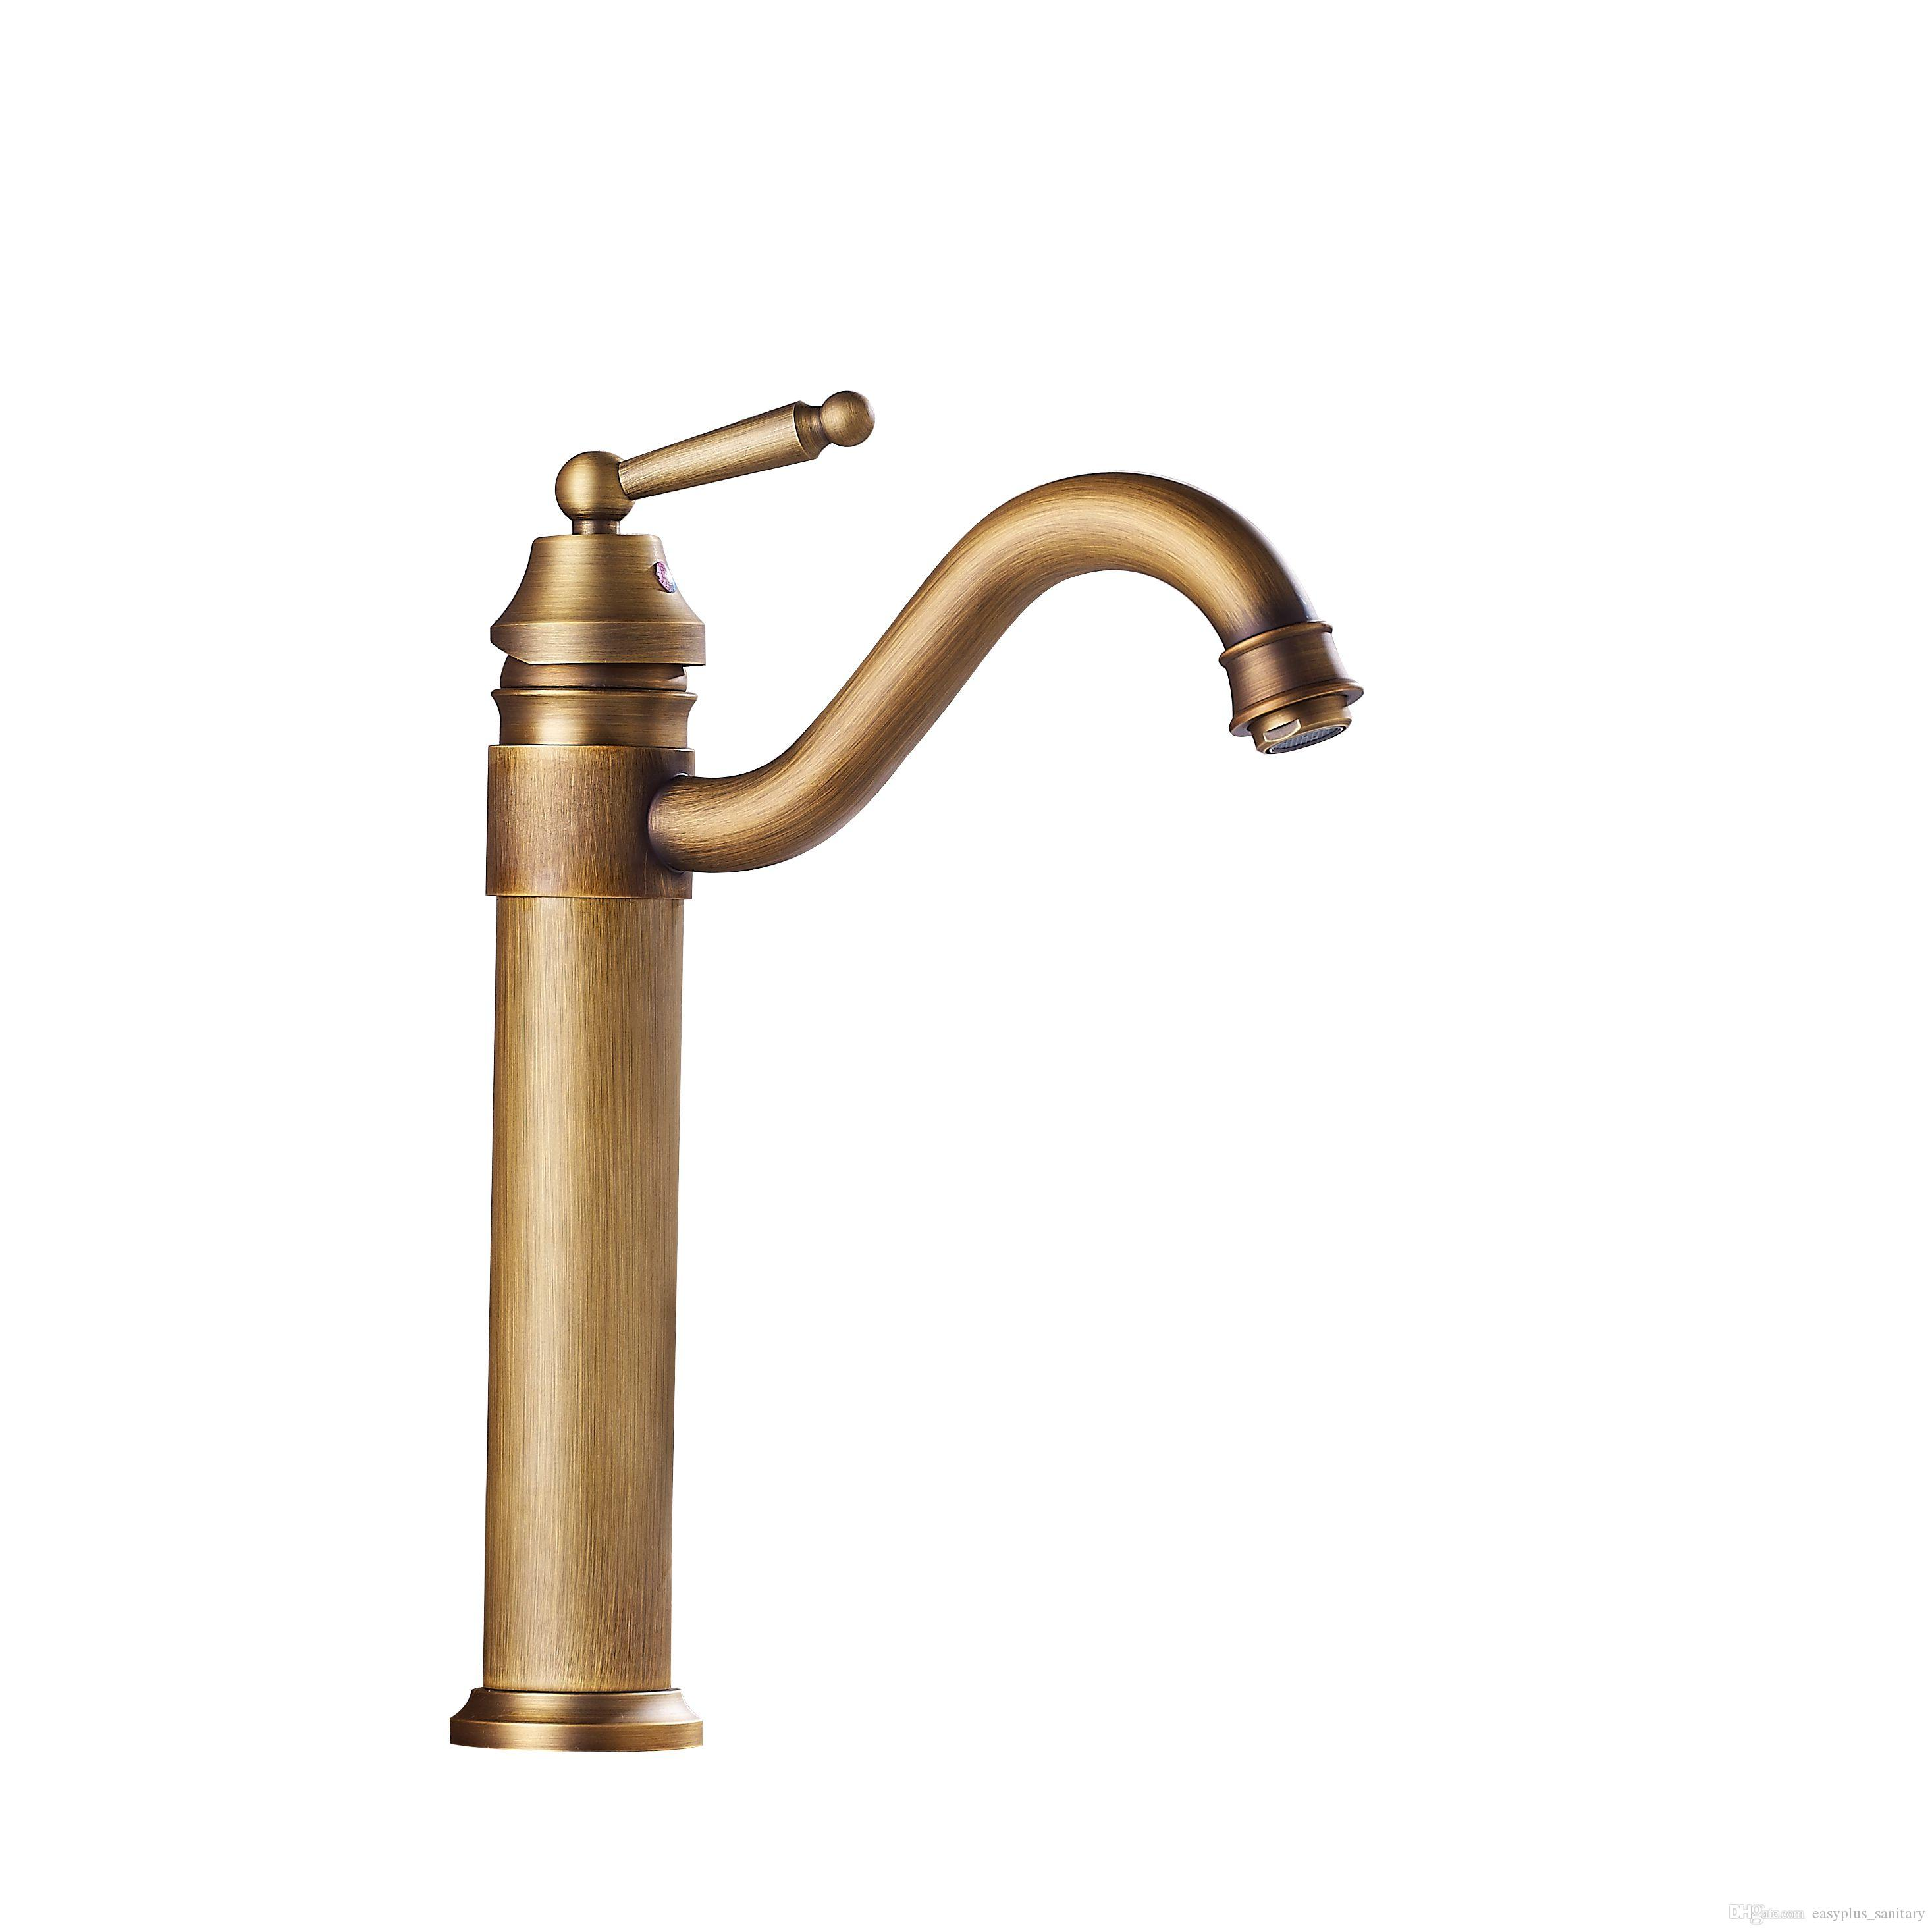 new in and faucets home hole luxury water shower golden from hot color item mixer single fashion kitchen brass cold sink taps copper faucet